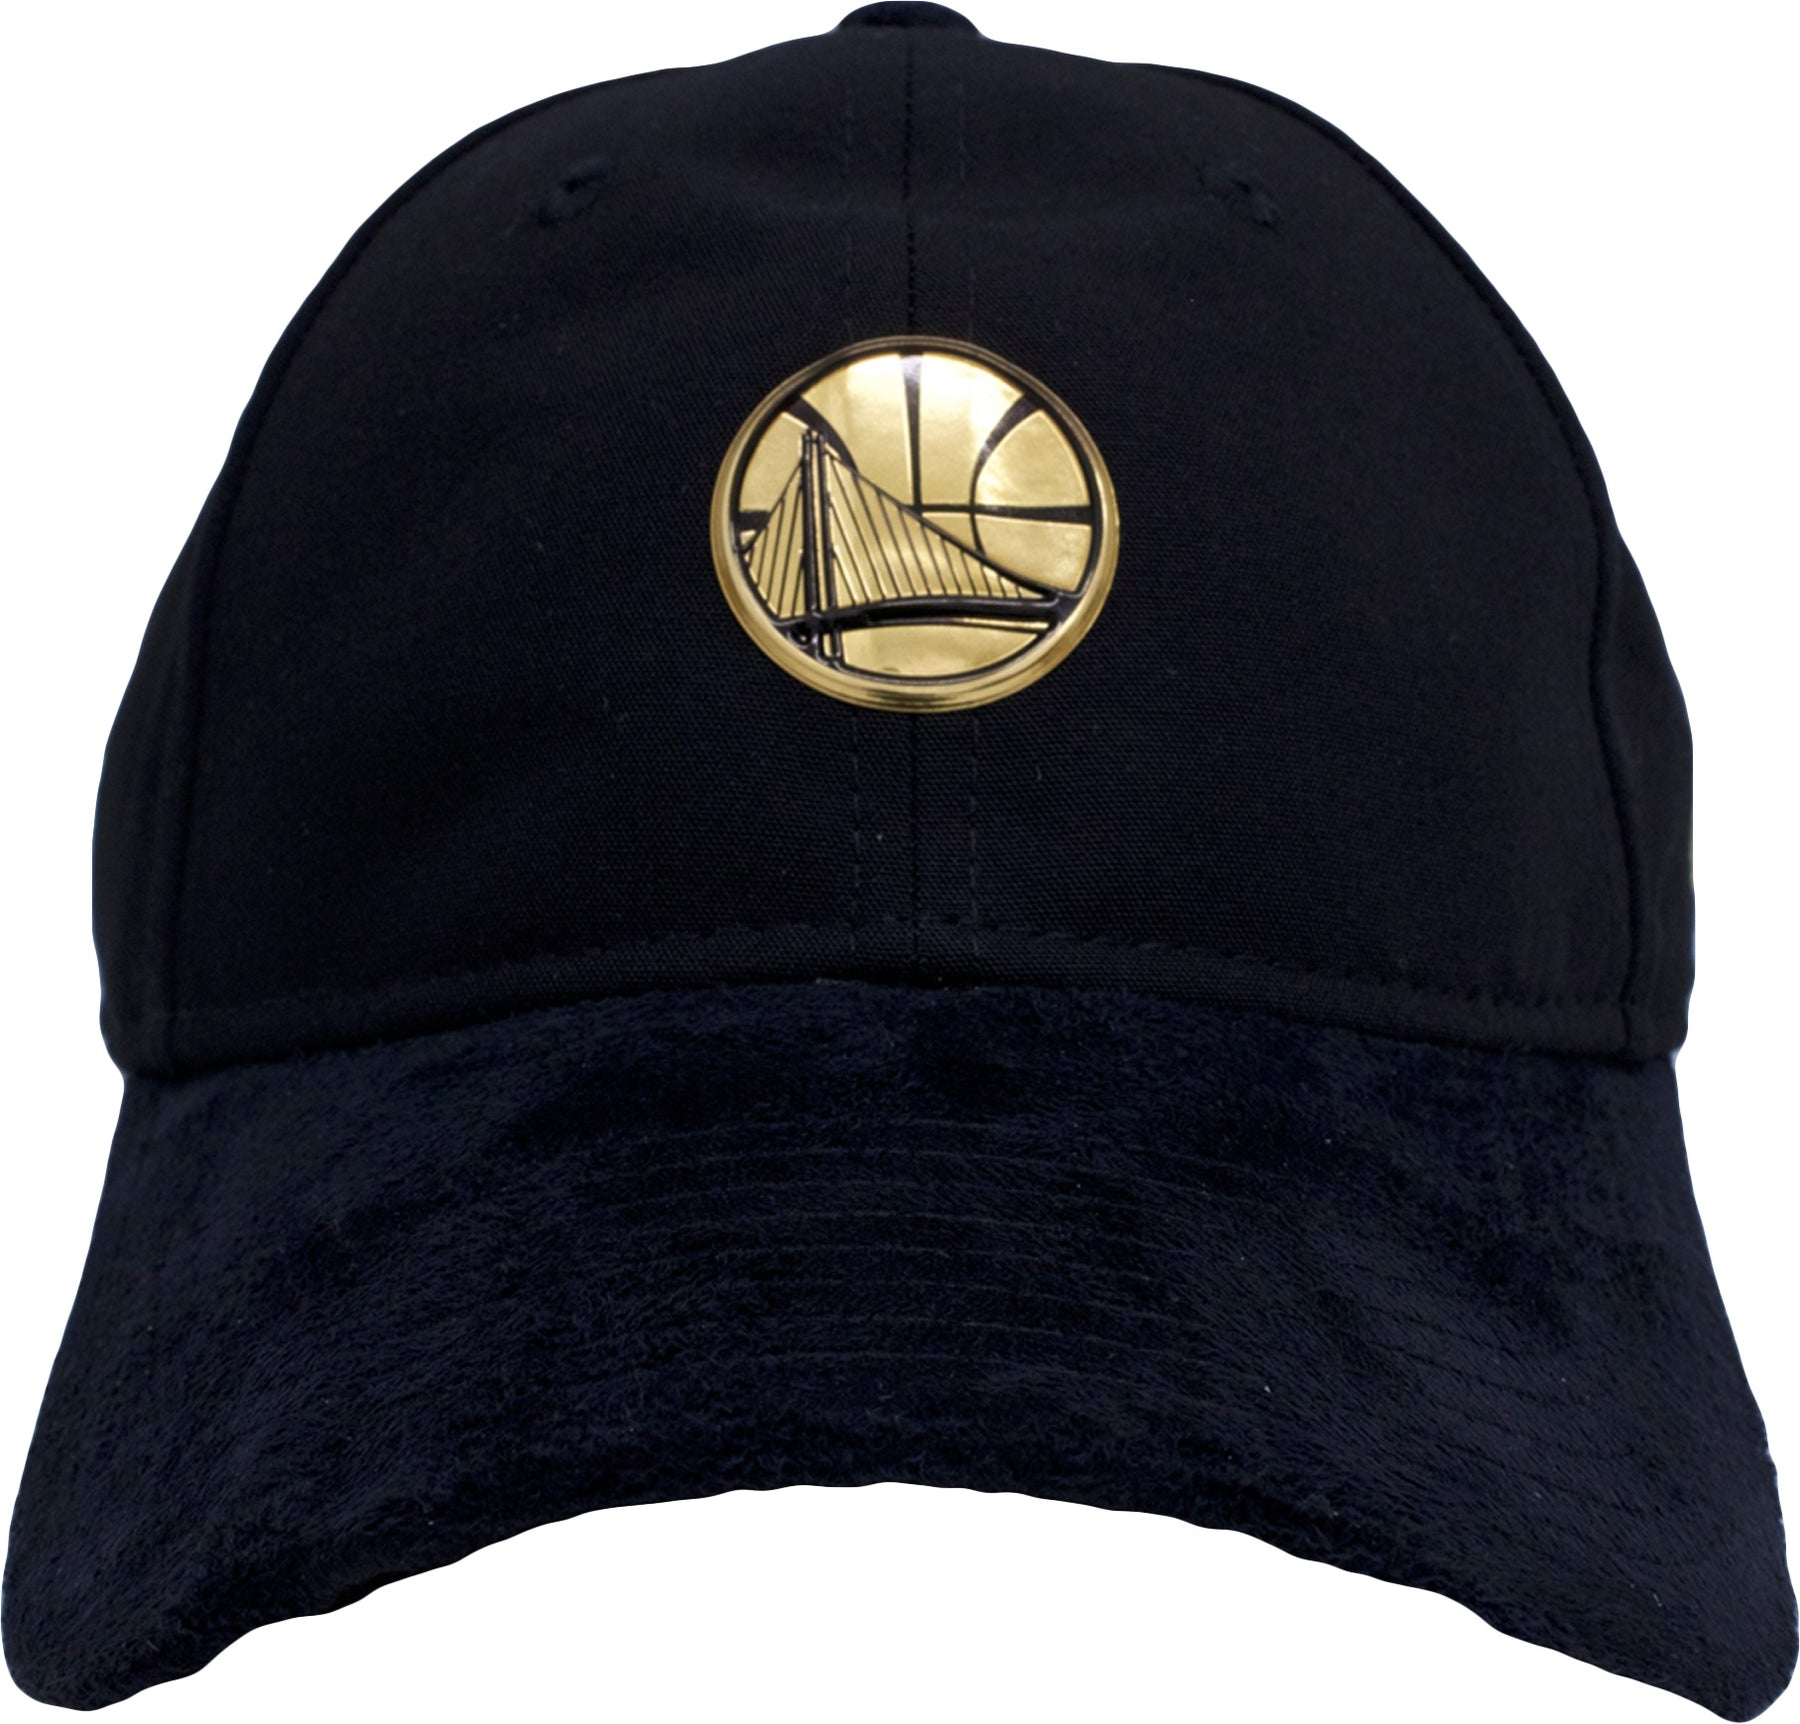 4abcac2fbbb the golden state warriors black dad hat has a black crown